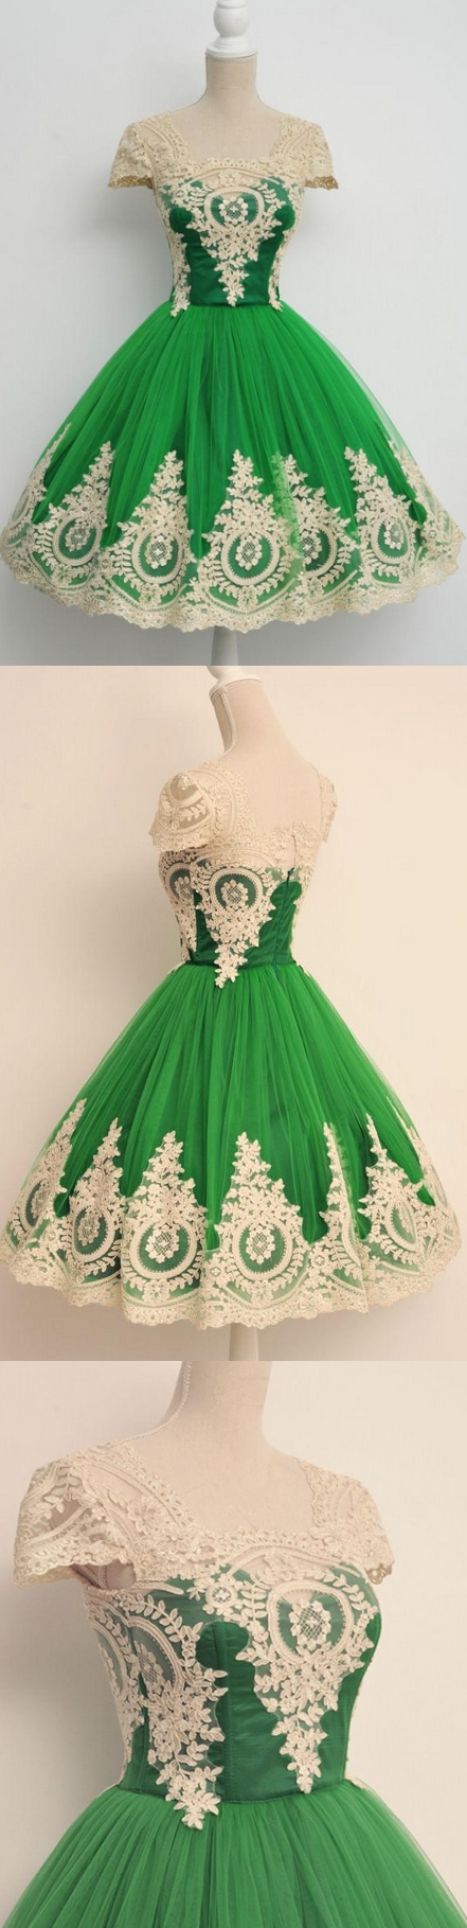 Short homecoming dresses princess prom dresses green prom dresses